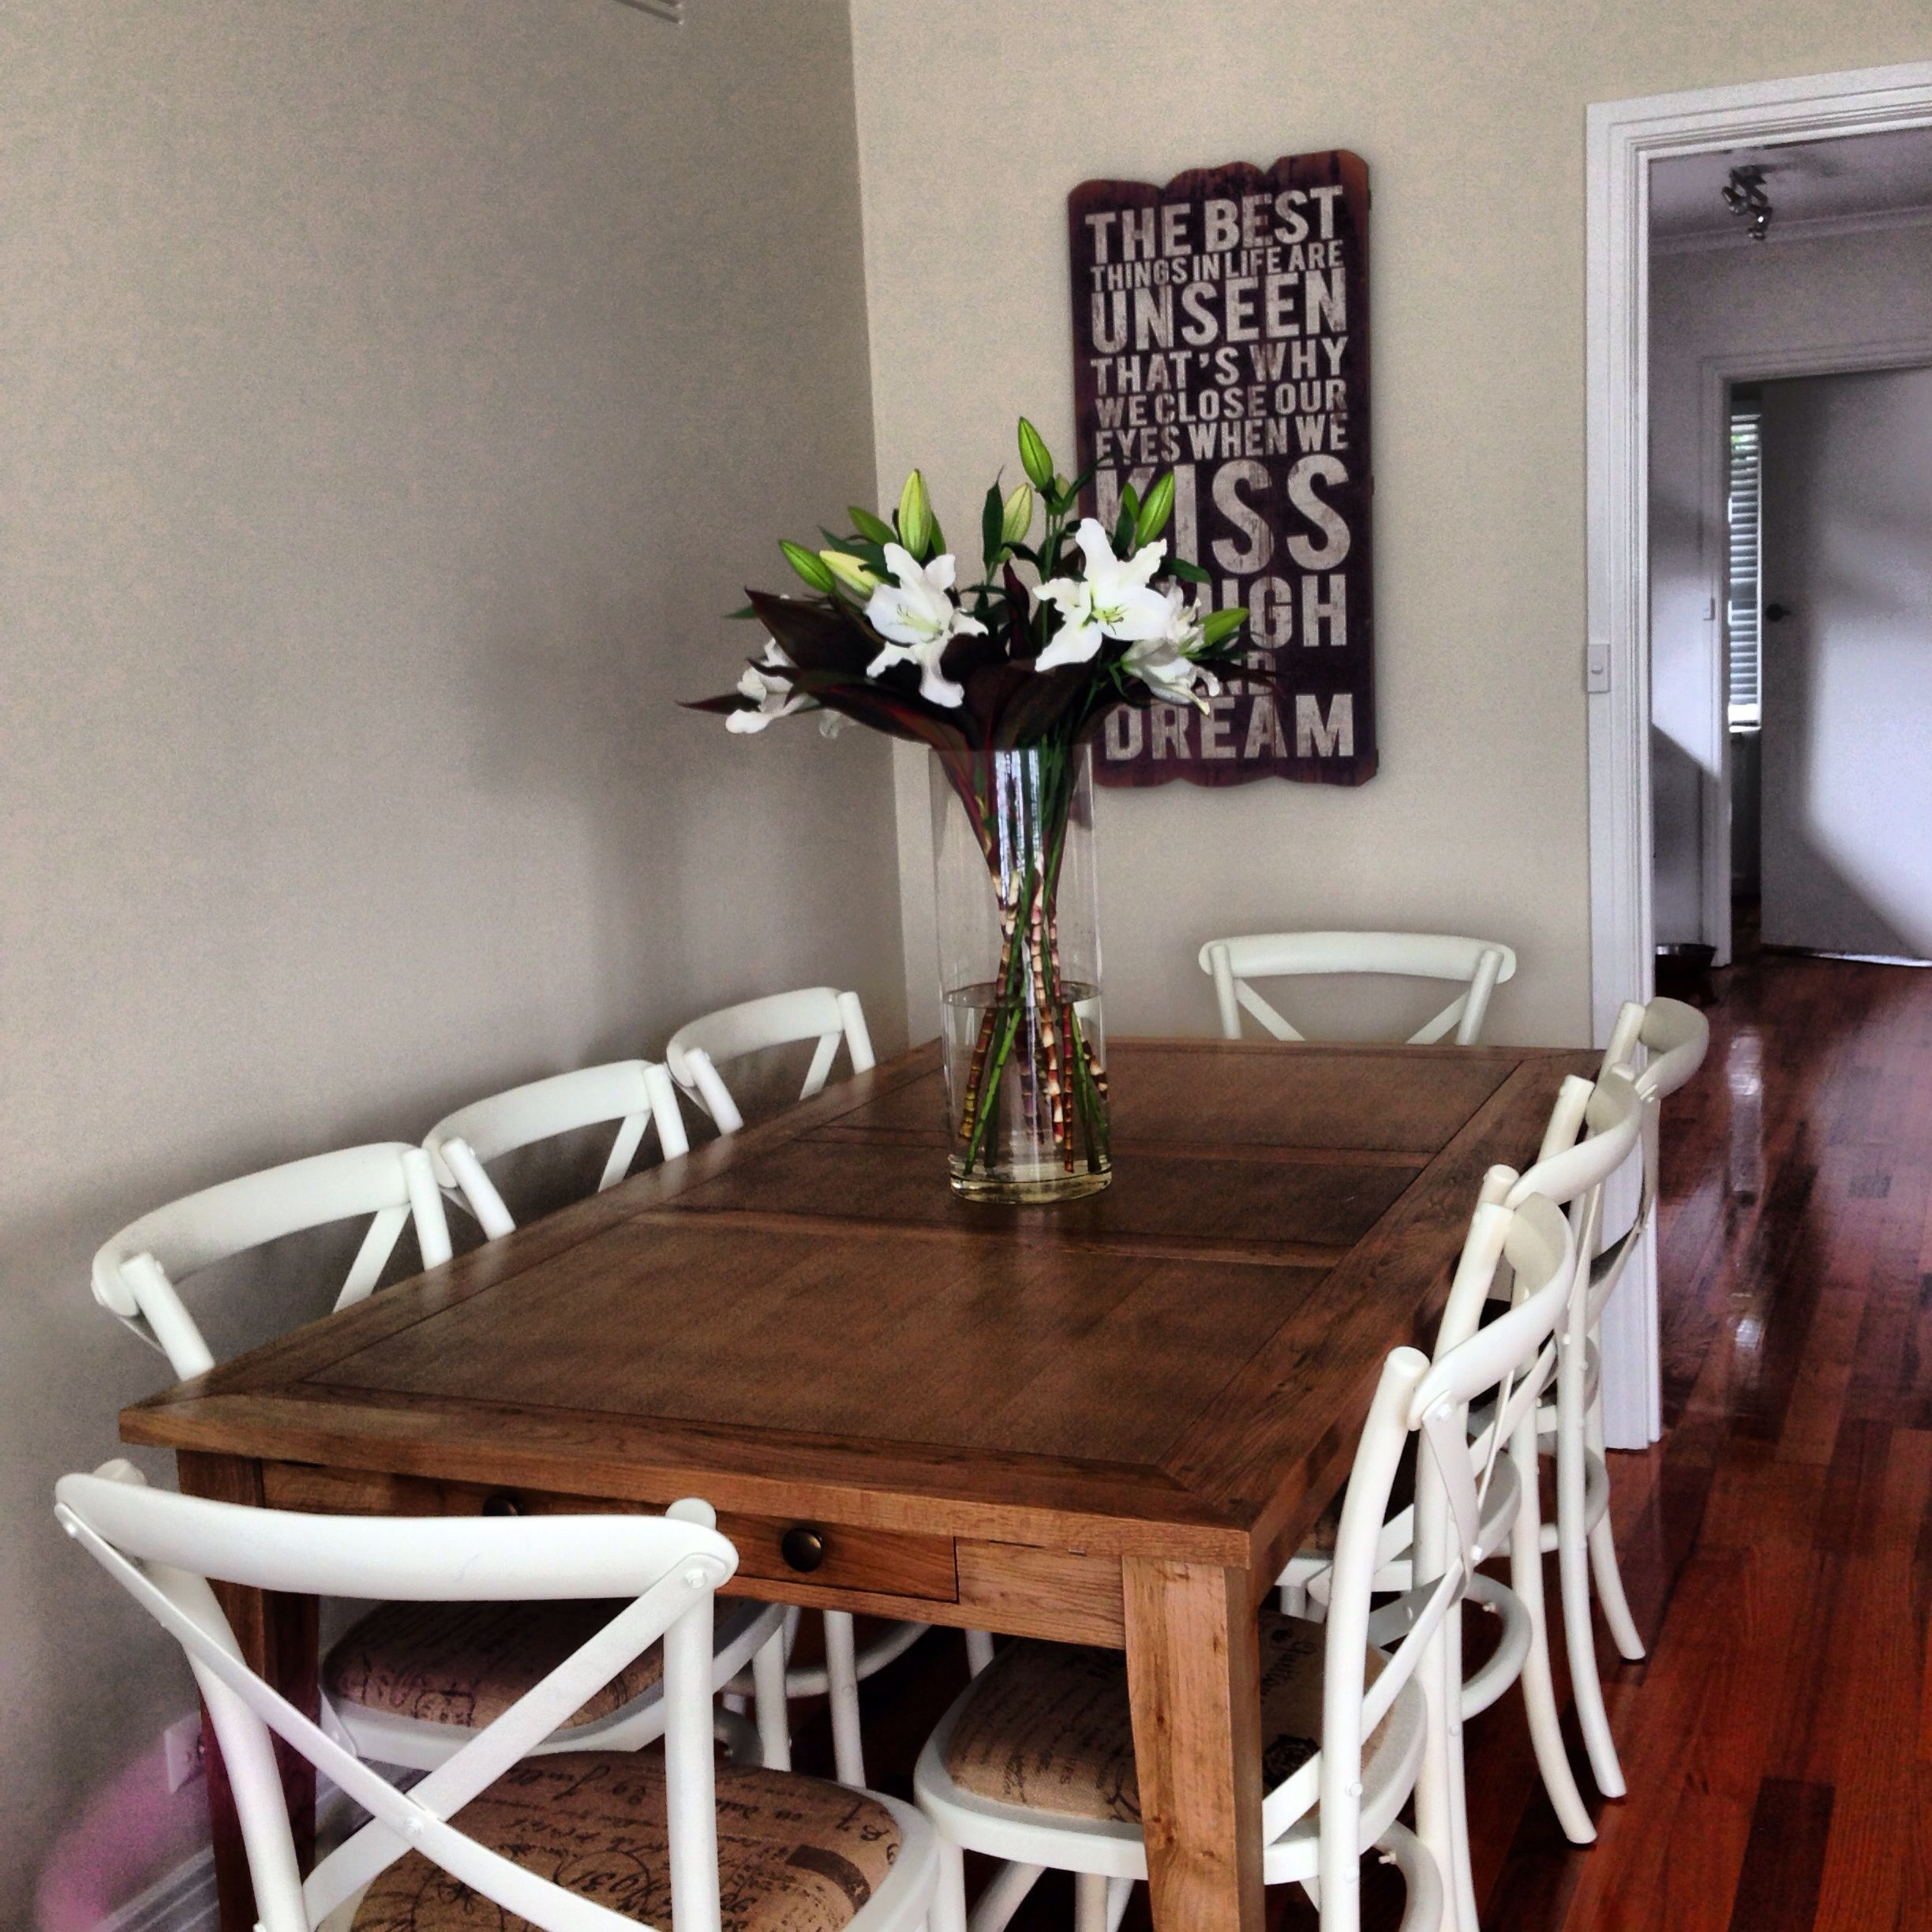 hamptons style dining room table and chairs | hamptons style, Wohnzimmer dekoo